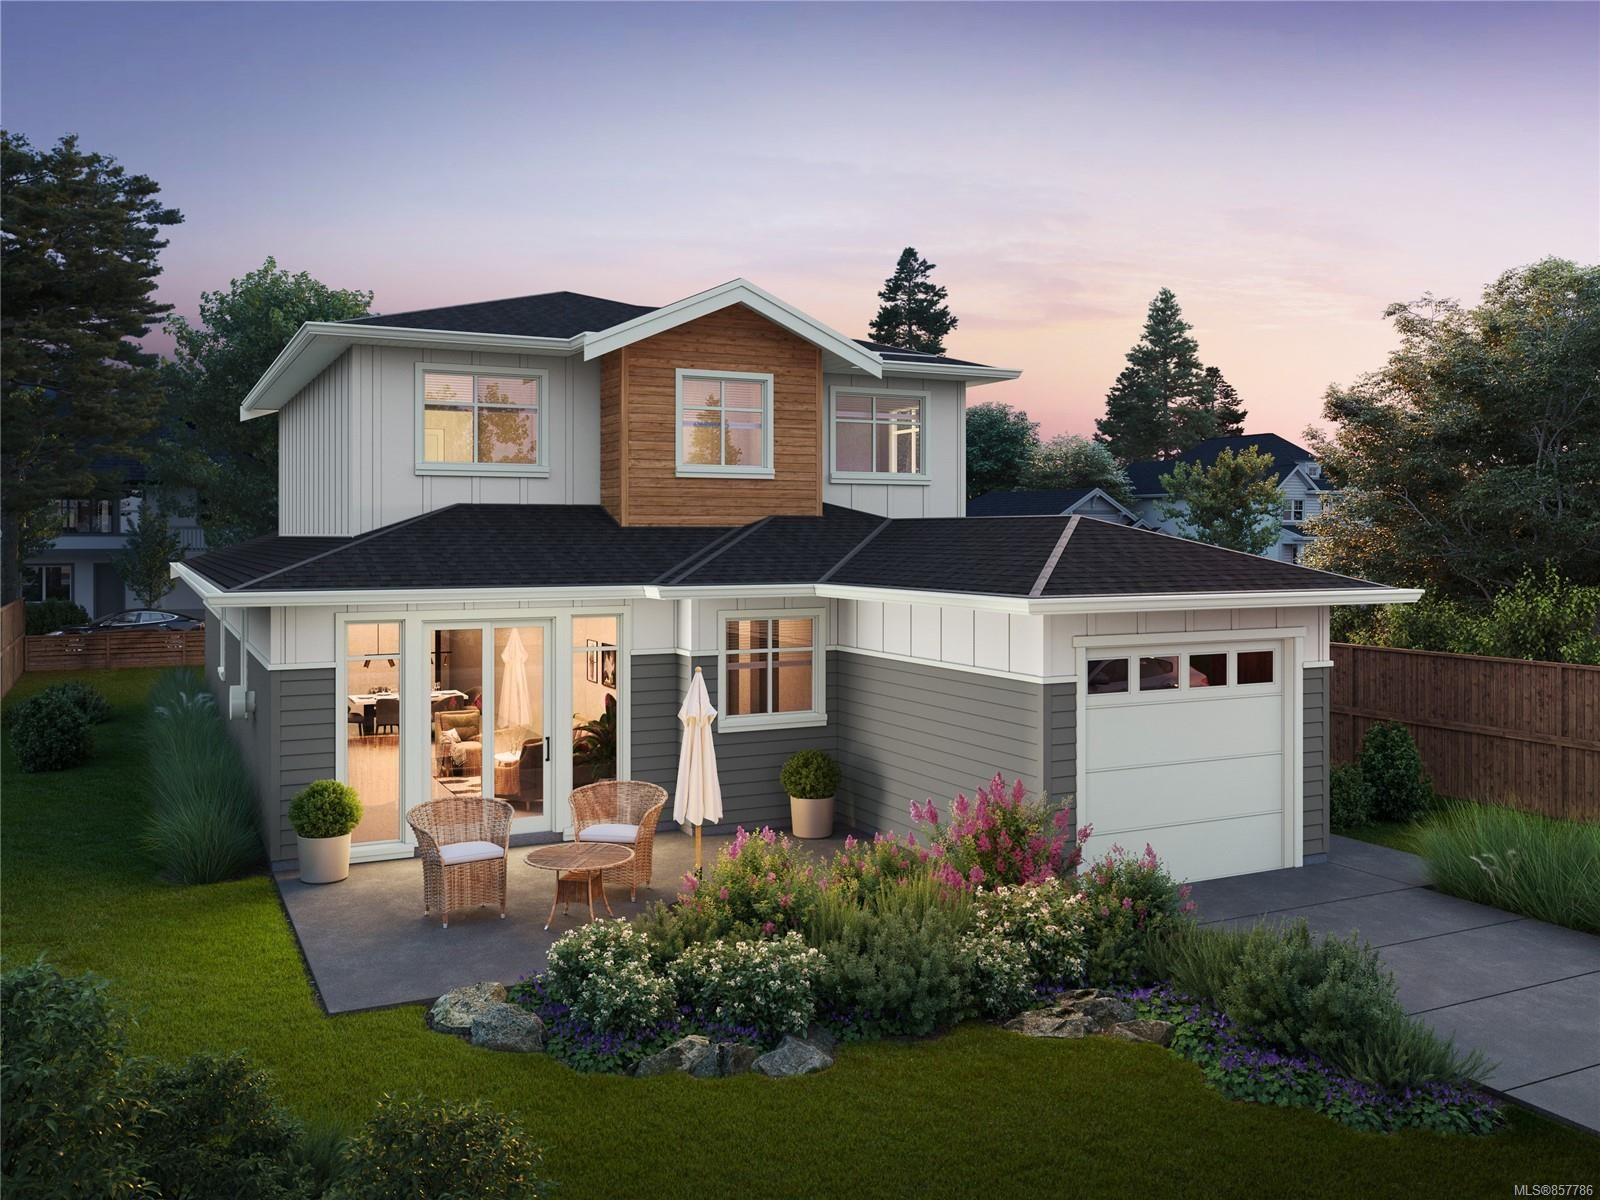 Main Photo: 2089 Deerbrush Cres in : NS Bazan Bay House for sale (North Saanich)  : MLS®# 857786